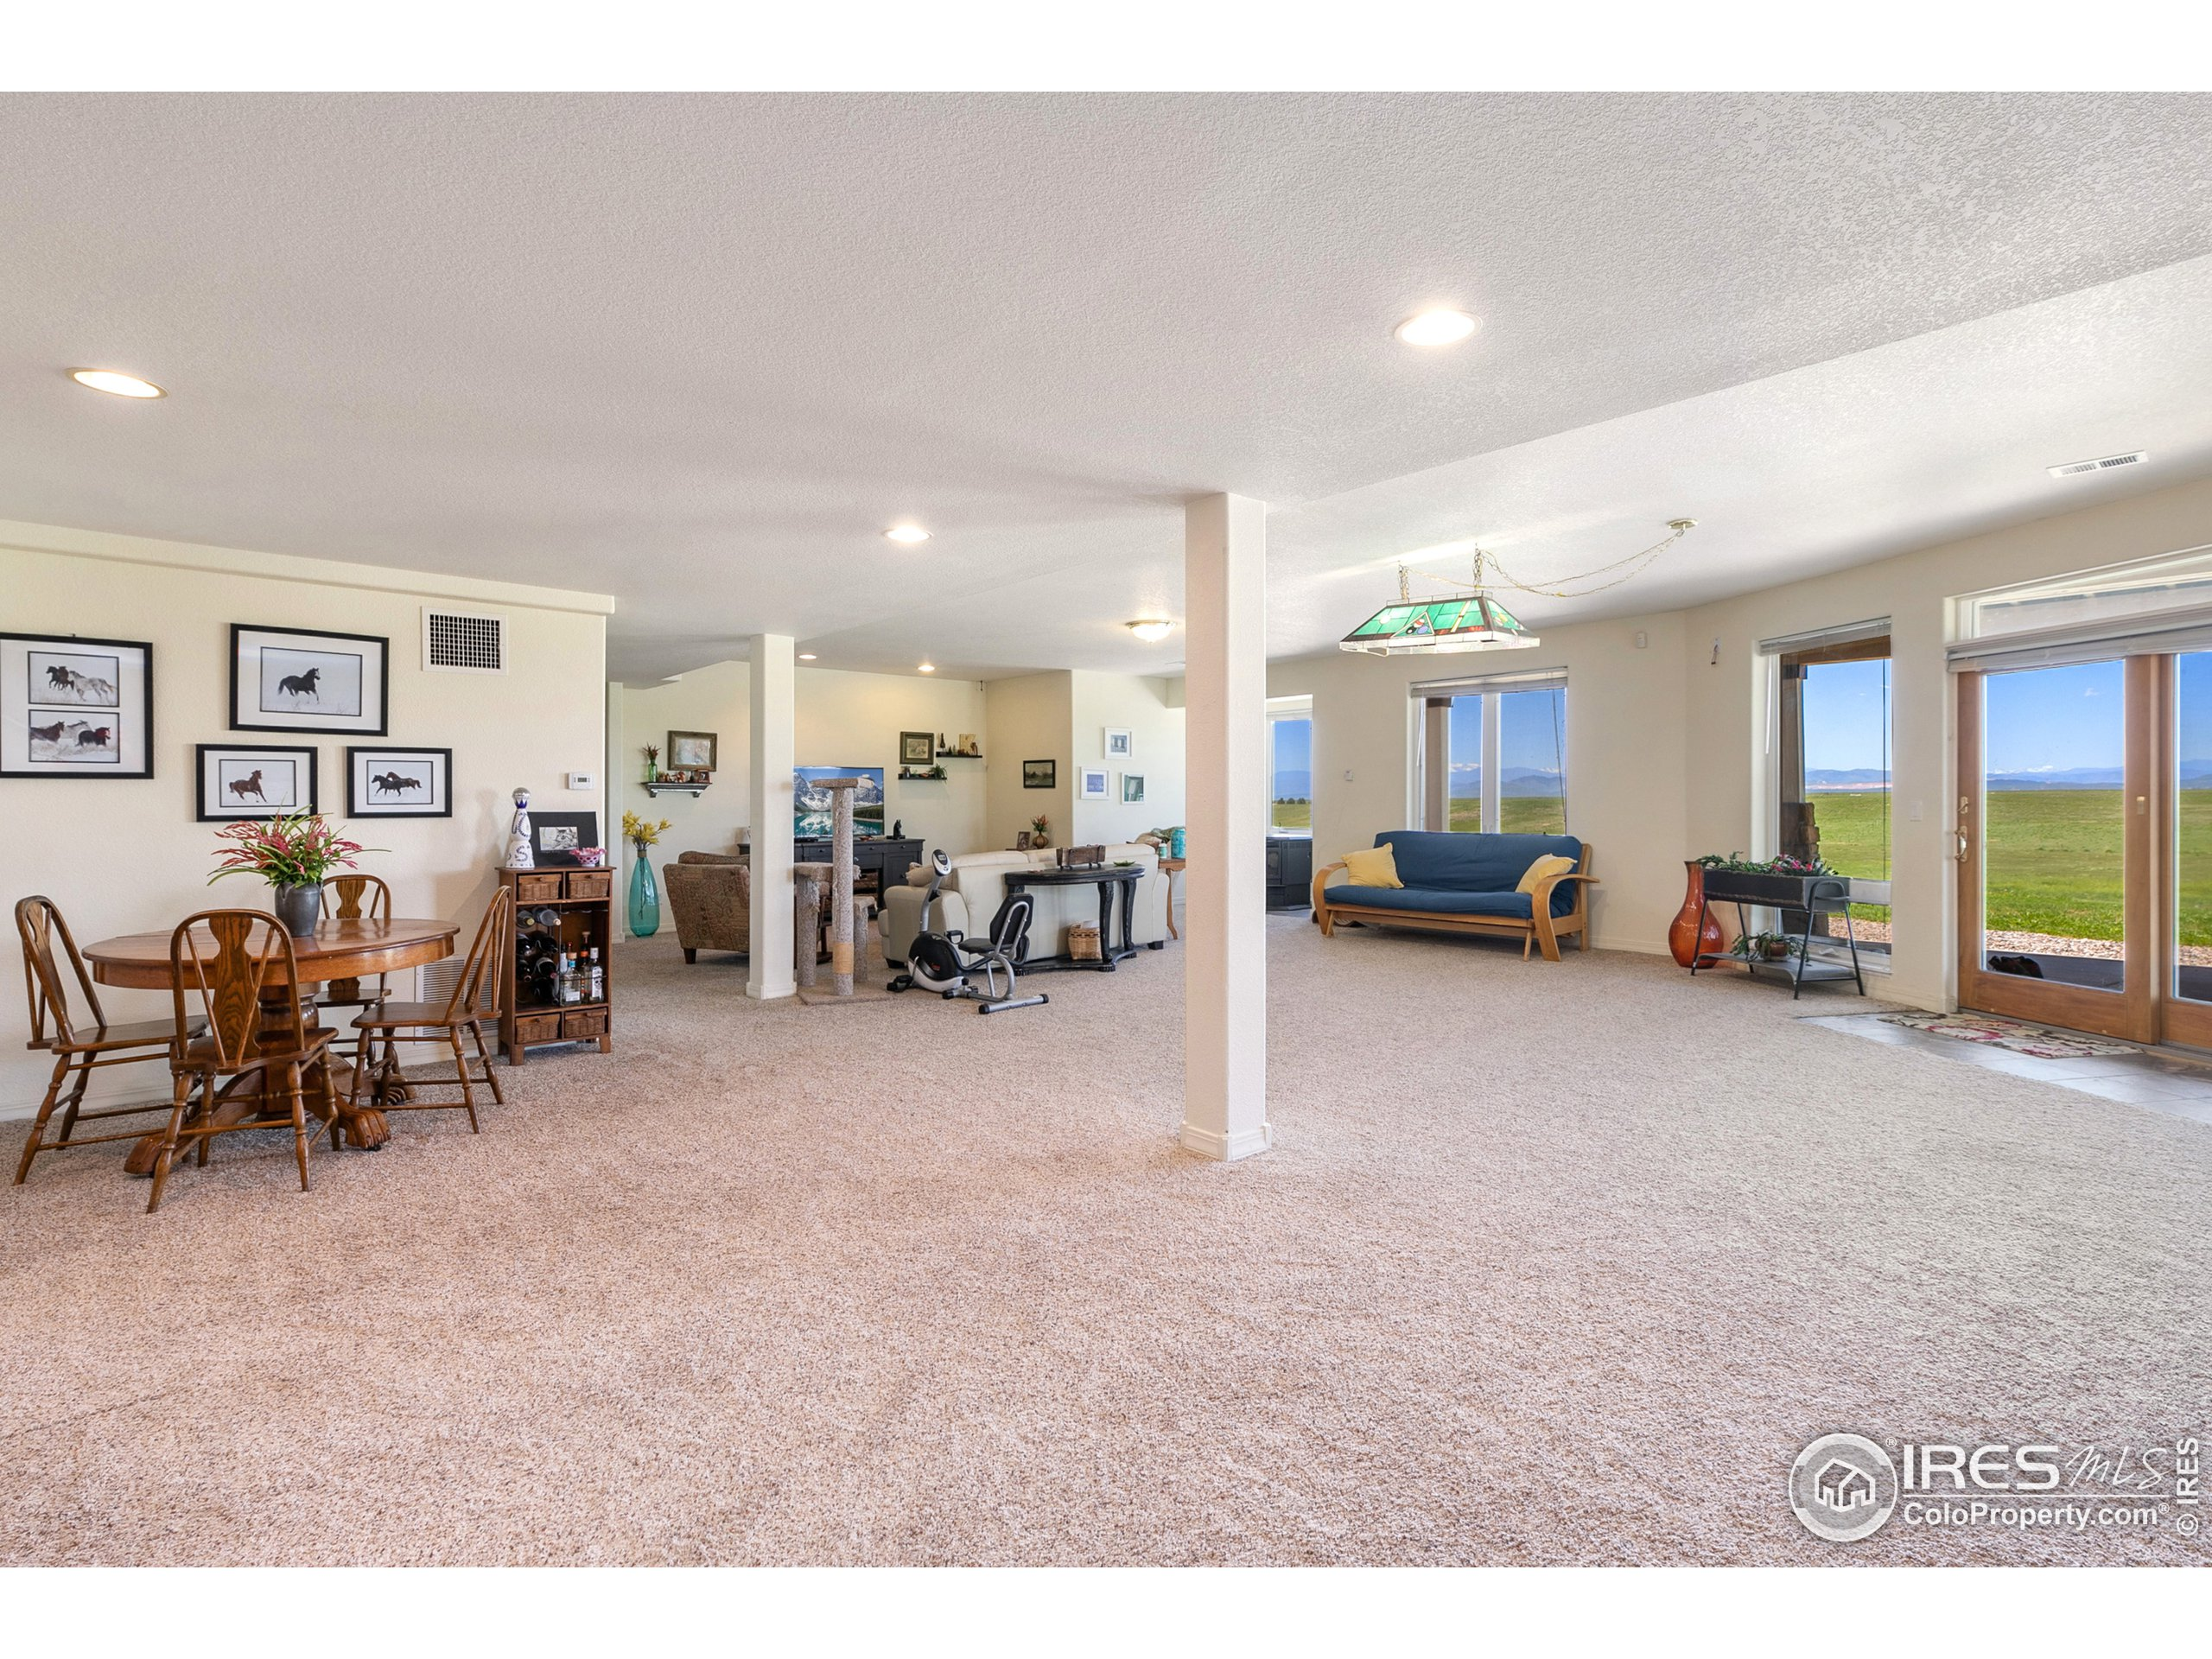 Fully finished downstairs walk out basement with separate entrance for Mother in law, Renter, horse trainer, staff...